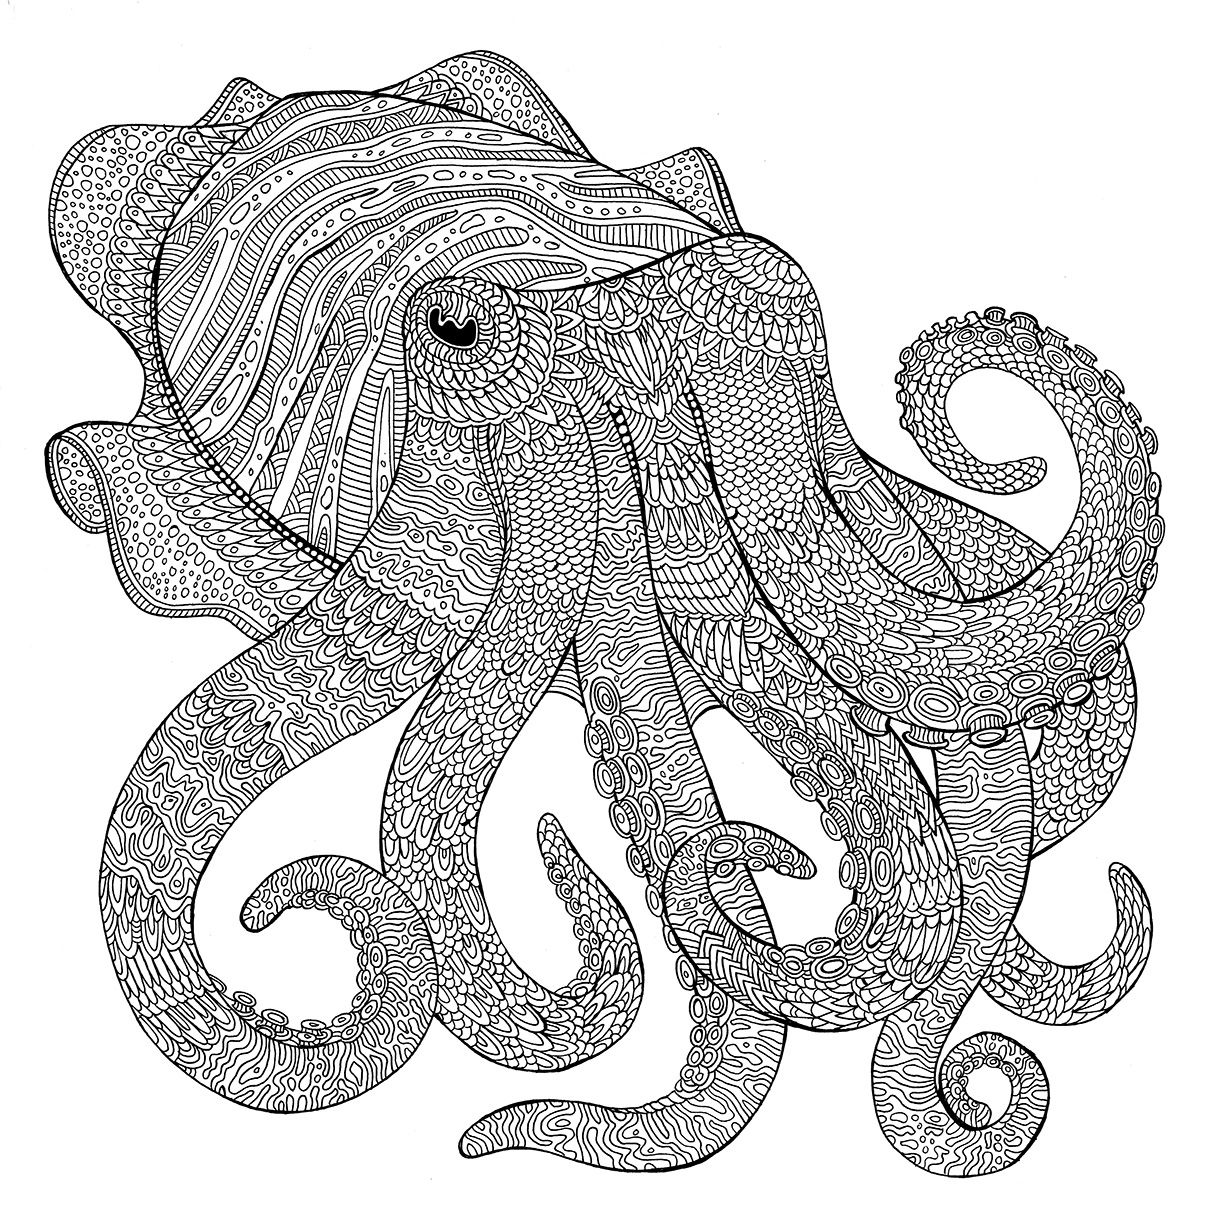 cuttlefish coloring pages cuttlefish coloring download cuttlefish coloring for free cuttlefish coloring pages